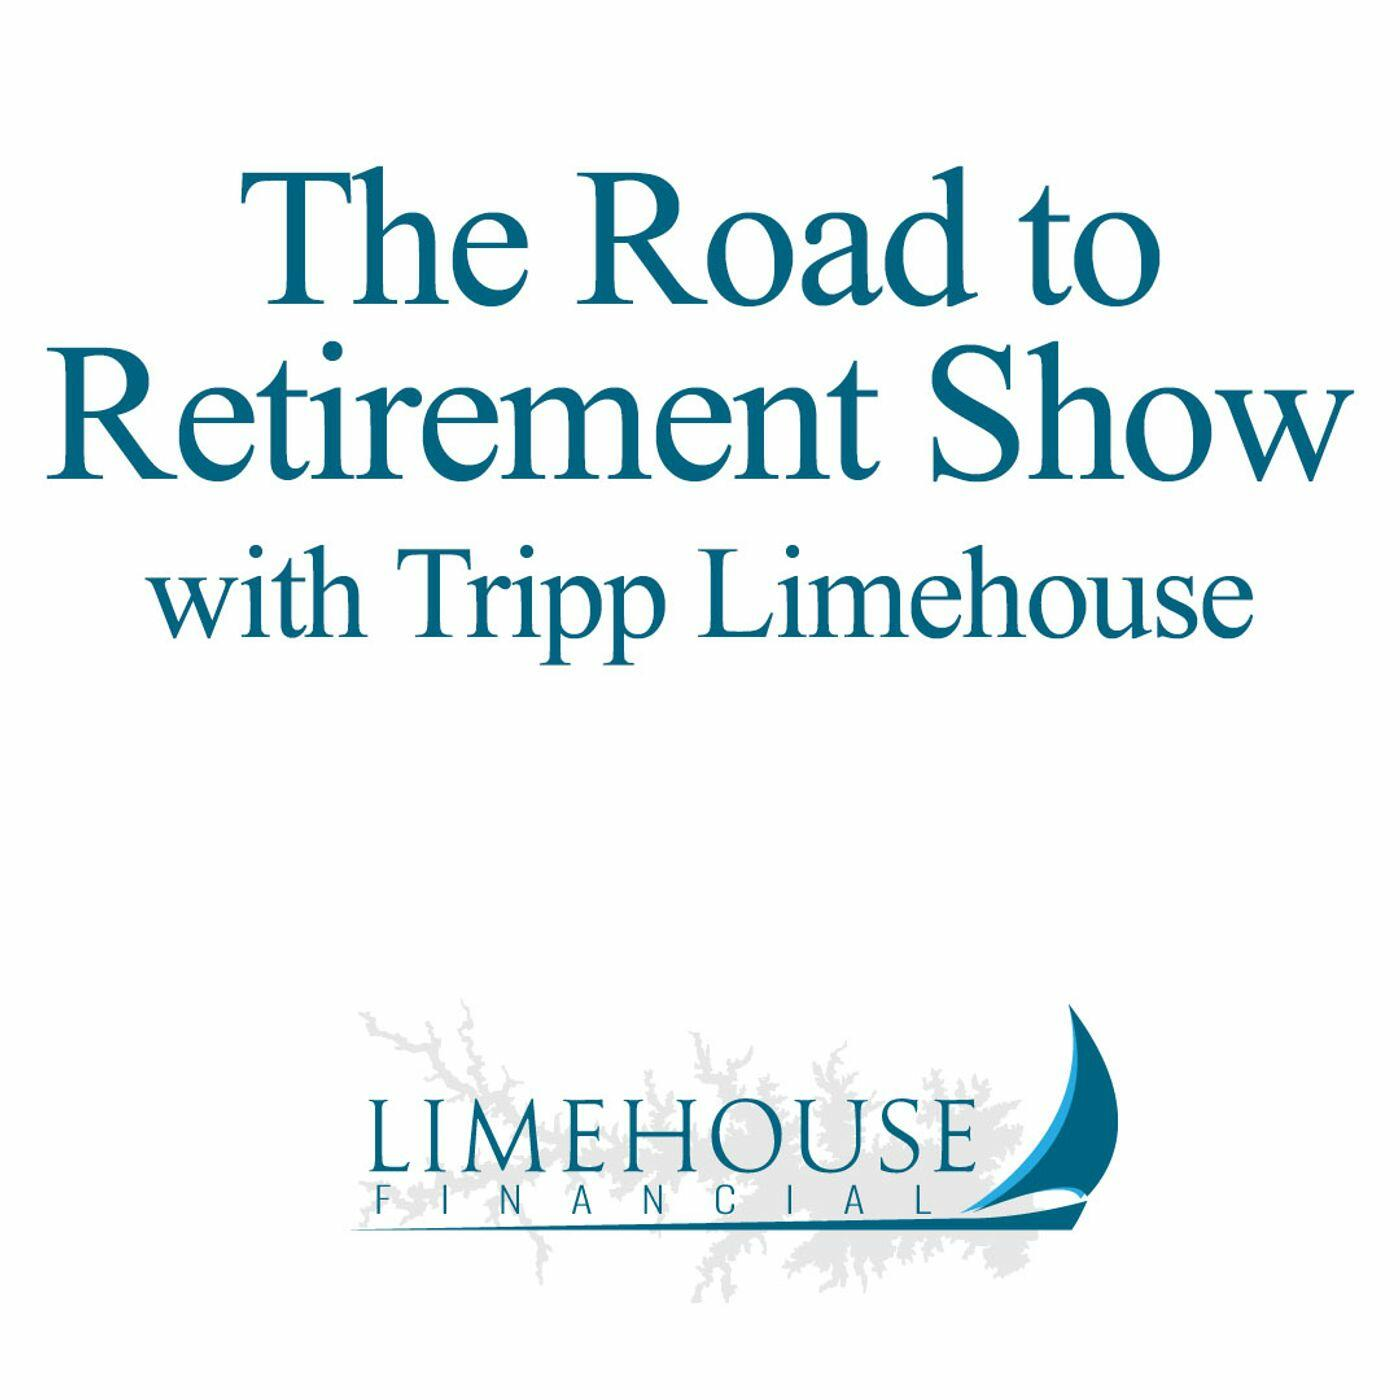 The Road to Retirement Show